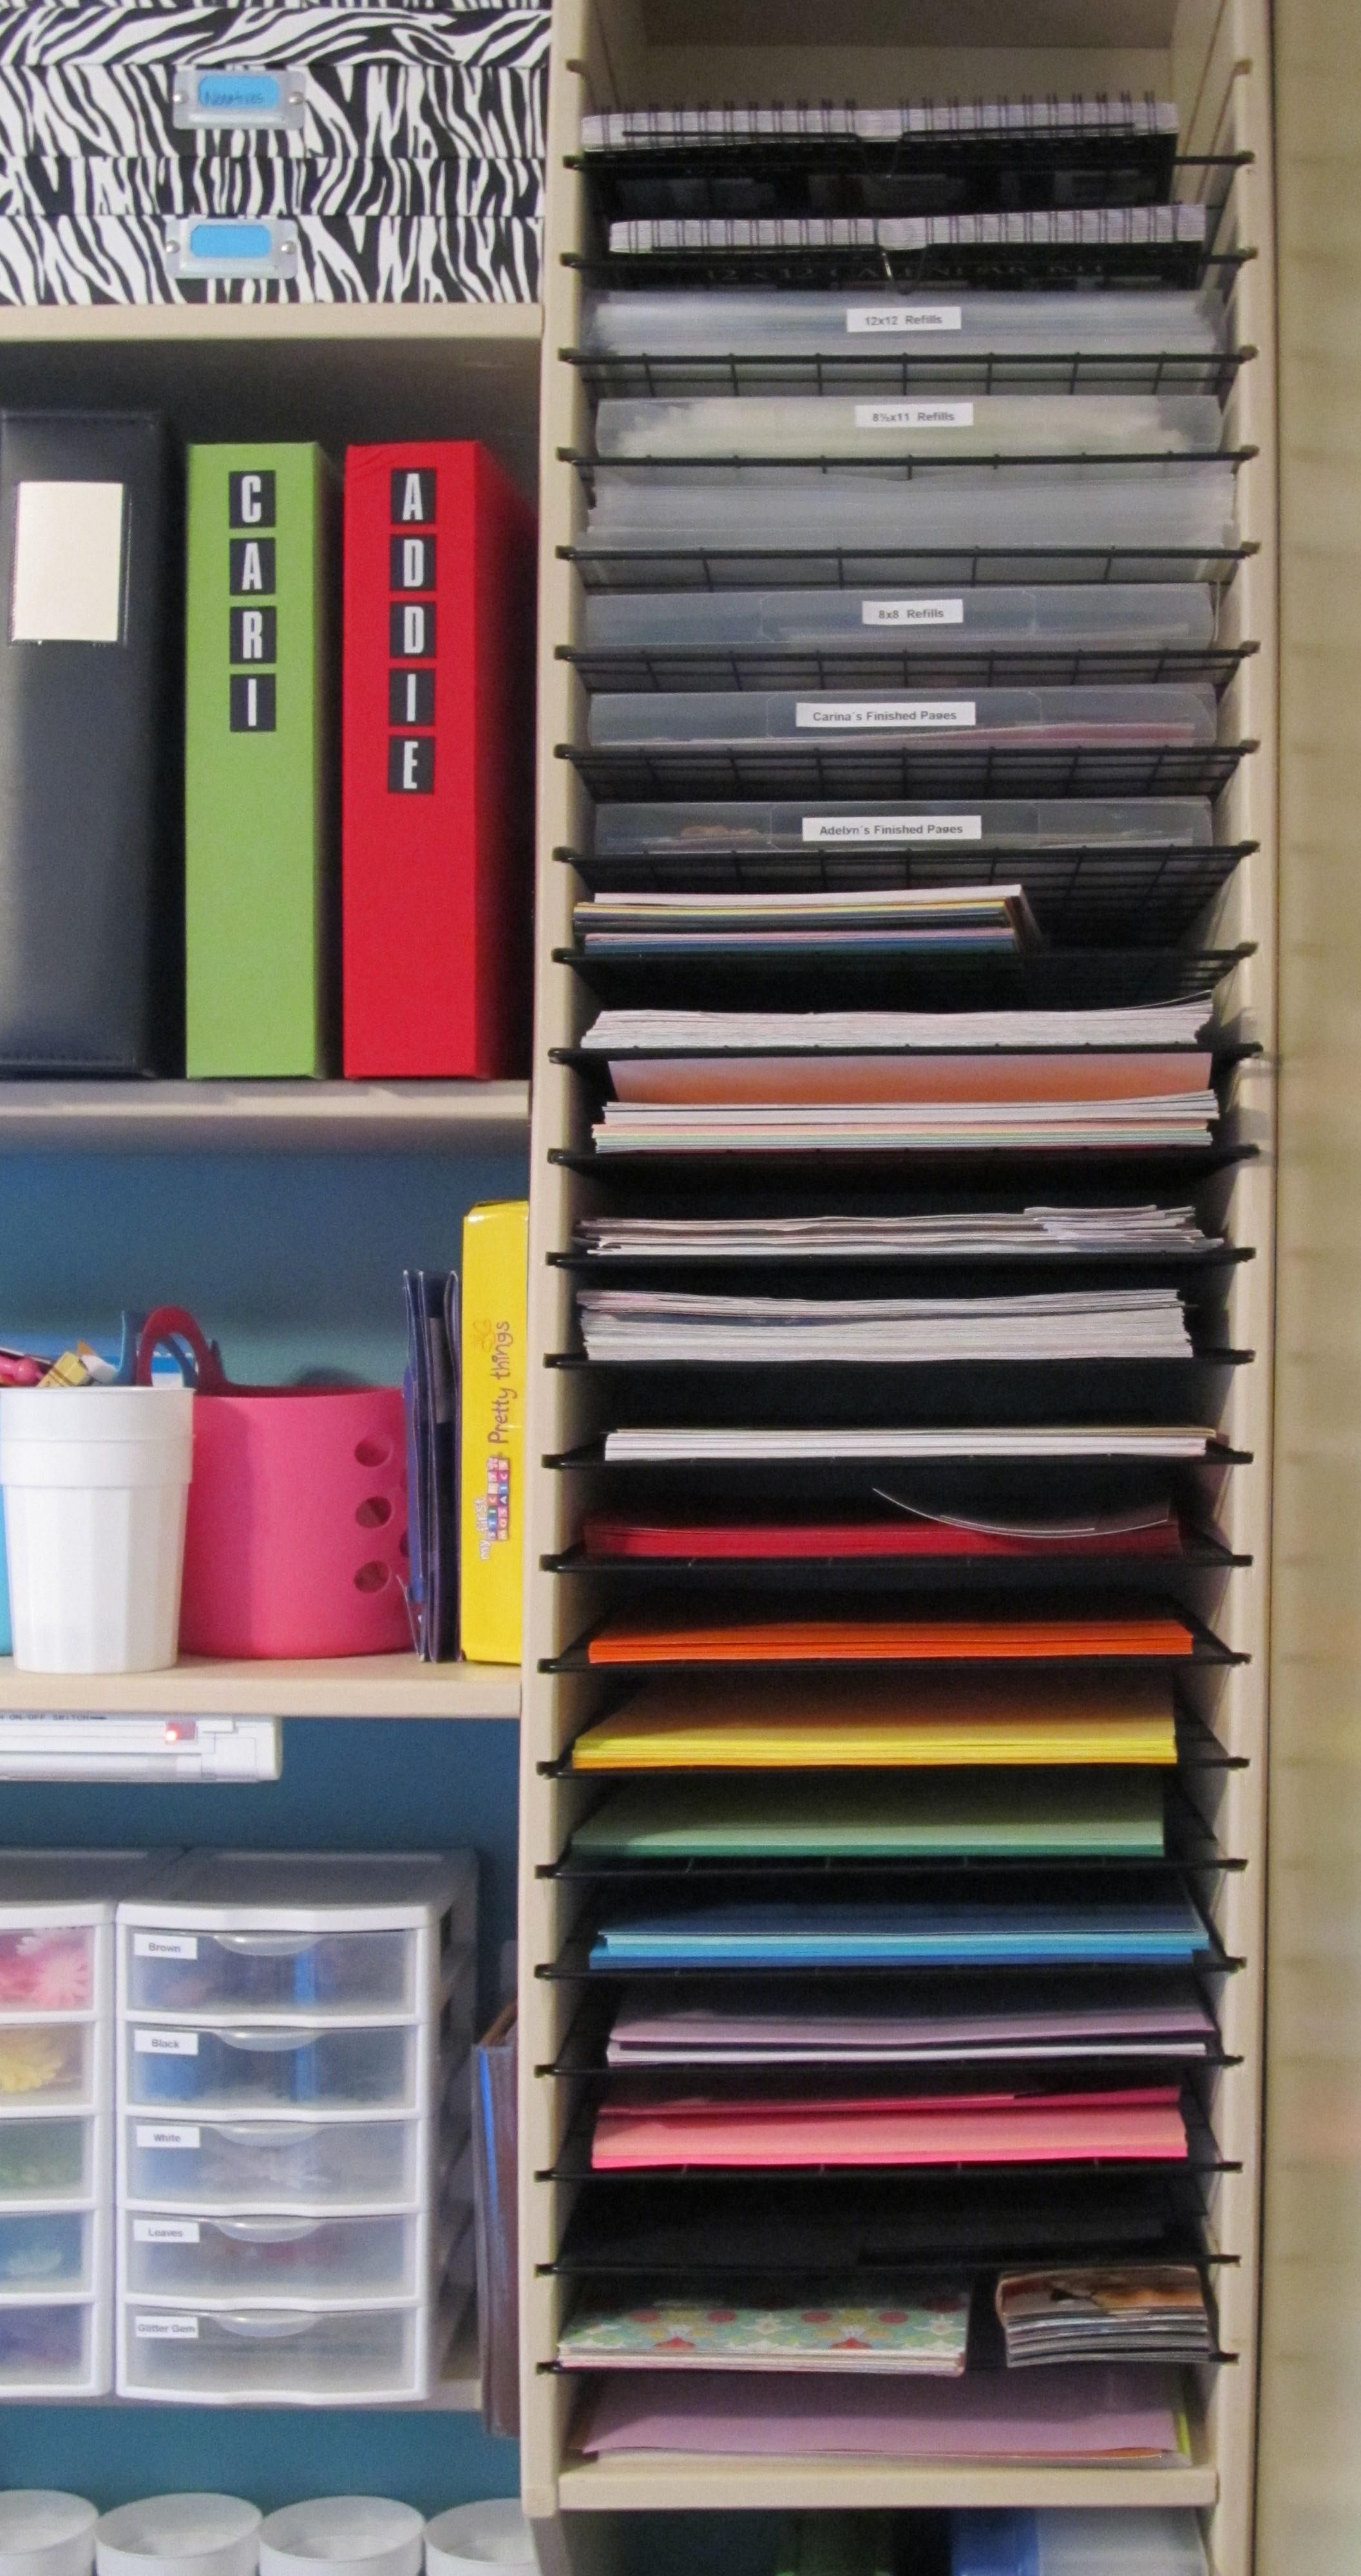 How to store scrapbook paper - Scrapbook Paper Holder With Wire Shelves From The 9 Cube Grid At Target Scrapbook Organizationstorage